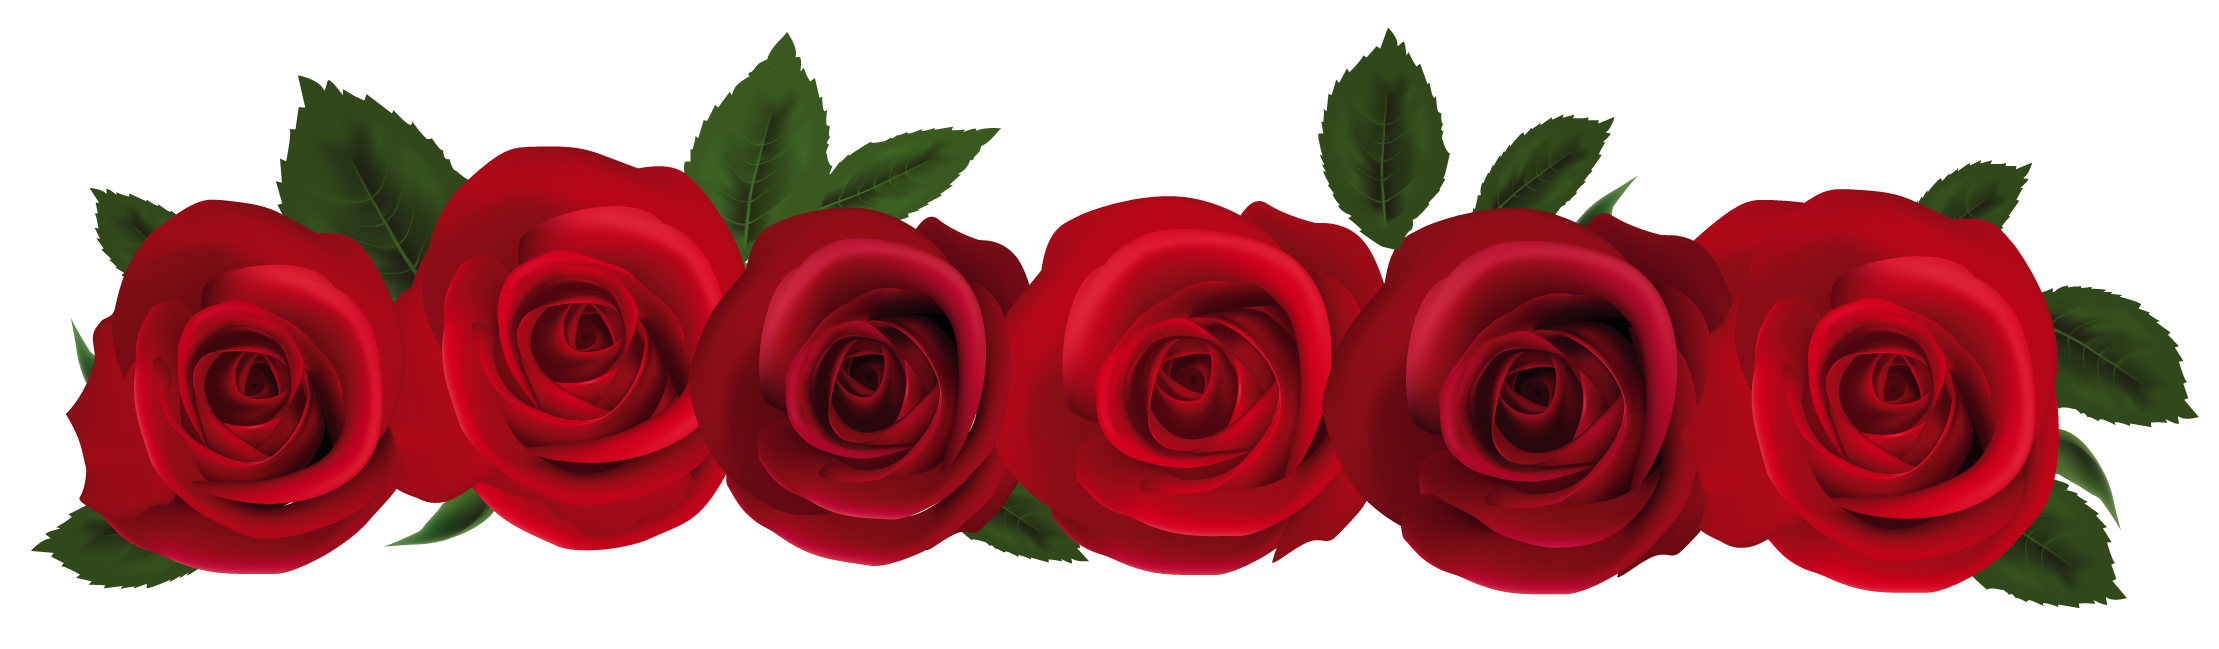 Roses Images Free Cliparts That You Can Download To You Computer And